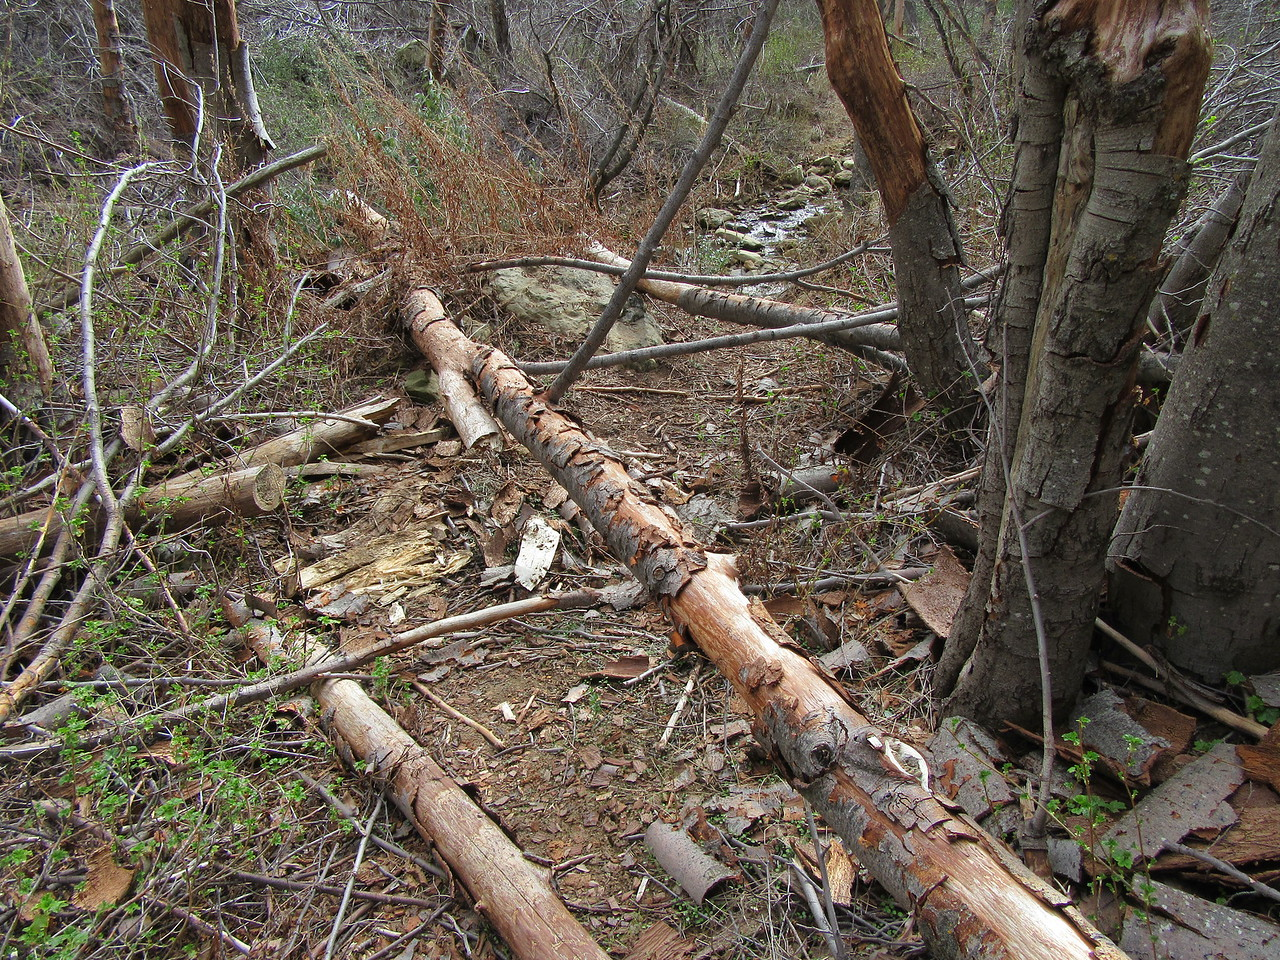 About two miles upstream from Beartrap Camp, the trail runs in the creekbed for about a quarter mile and it was strewn with logs, branches, boulders and washed/rutted out sections (and the latter factors will probably prevent travel by stock).